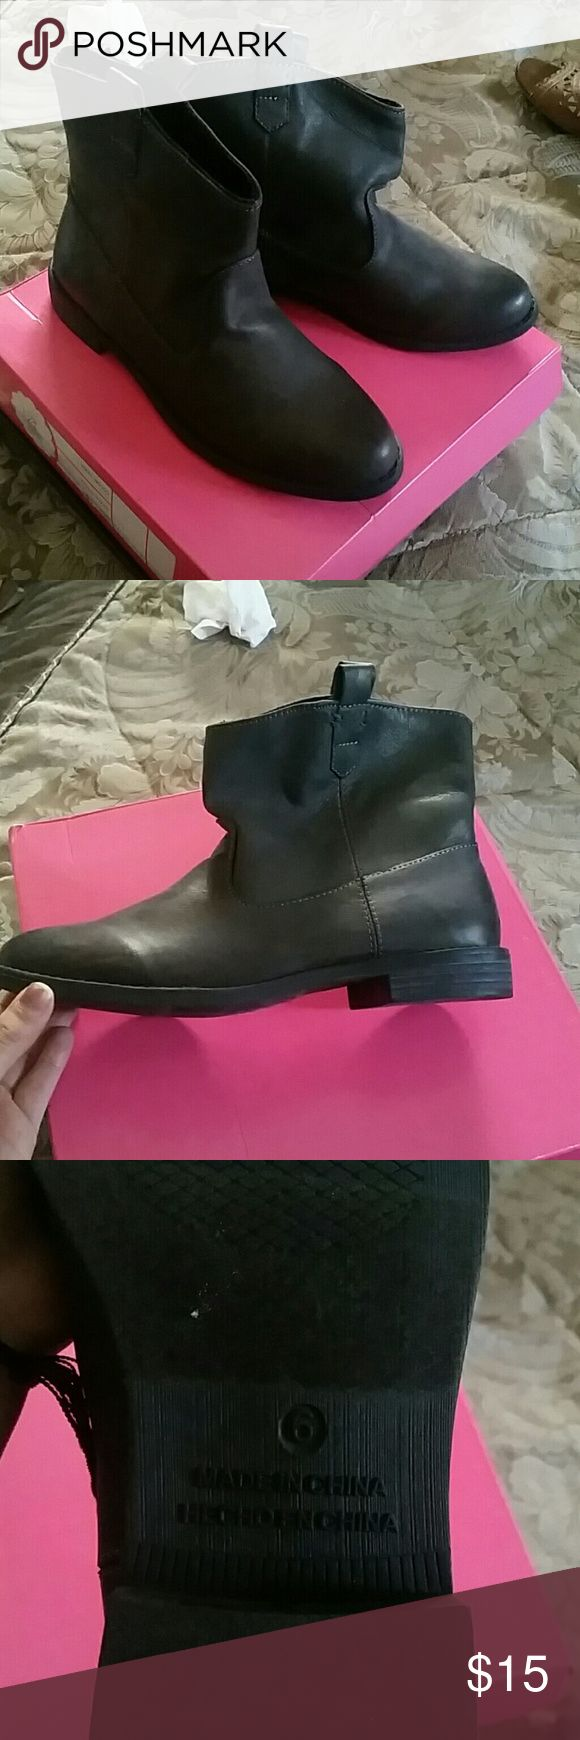 Old navy ankle boots Brand new and never been used Old Navy Shoes Ankle Boots & Booties